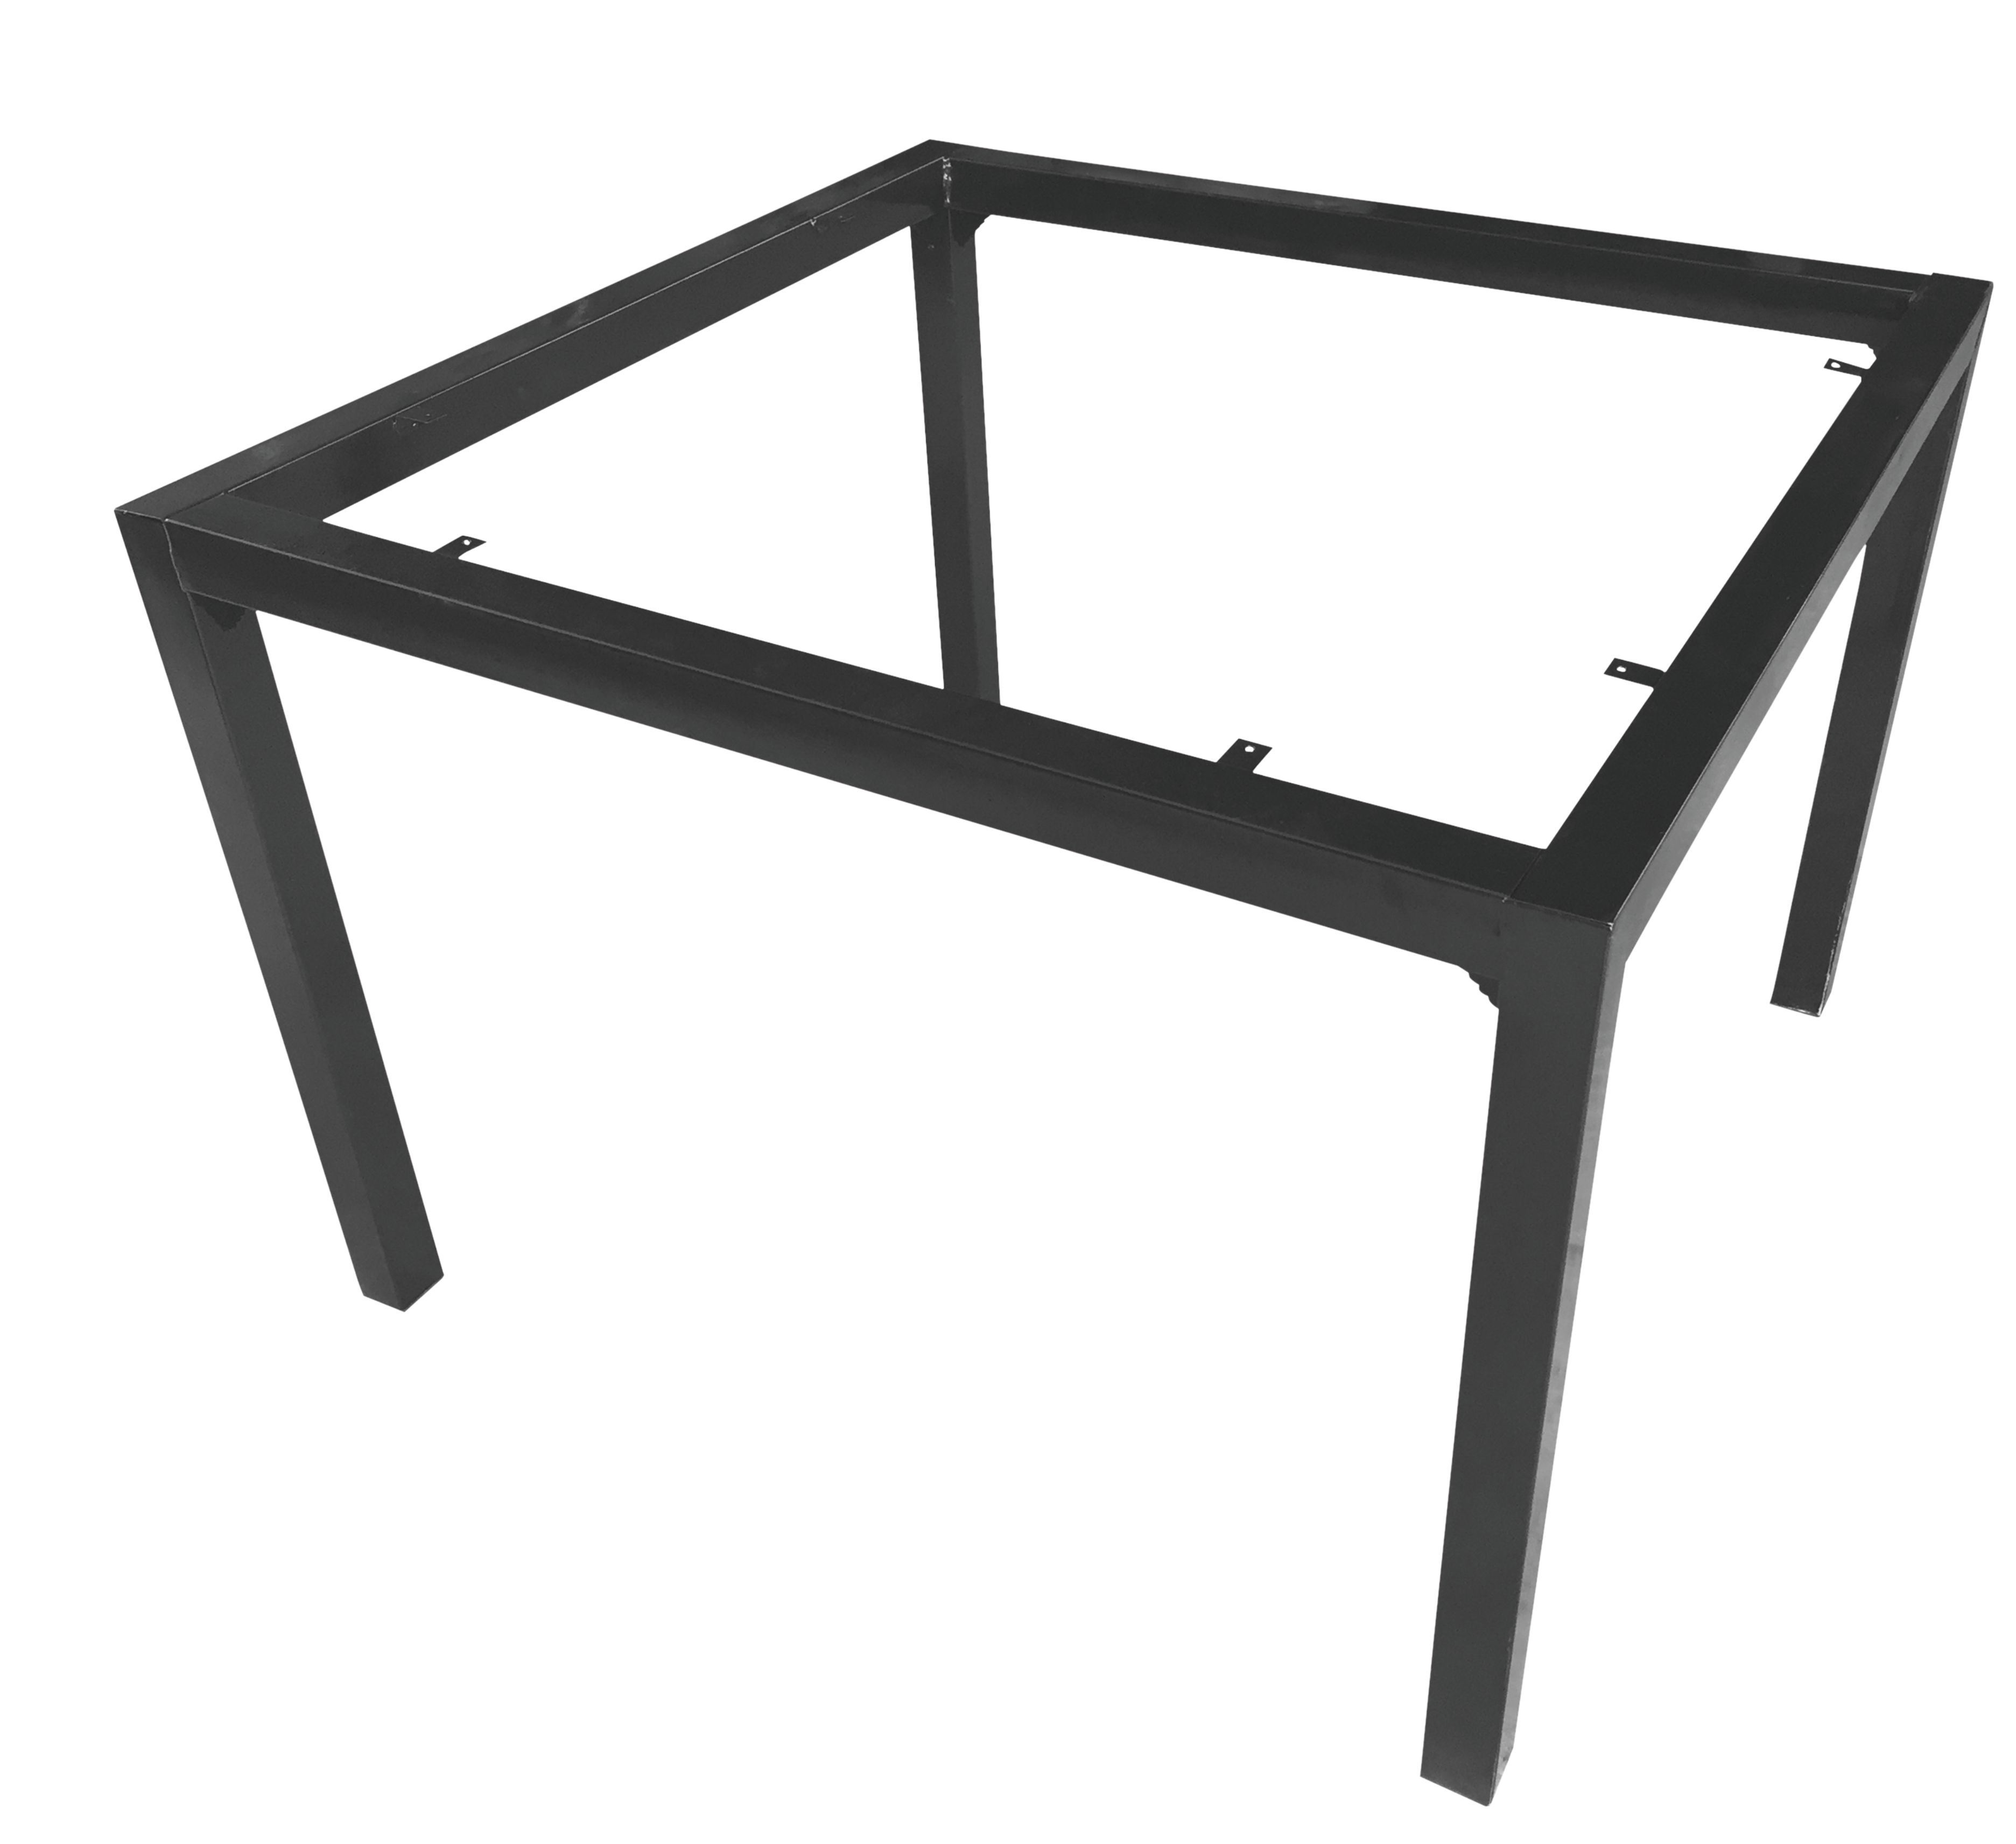 China Cheap Metal Steel Frame Wooden Top Coffee Table Dining Table Design For Living Room China Dining Table Wooden Board Table